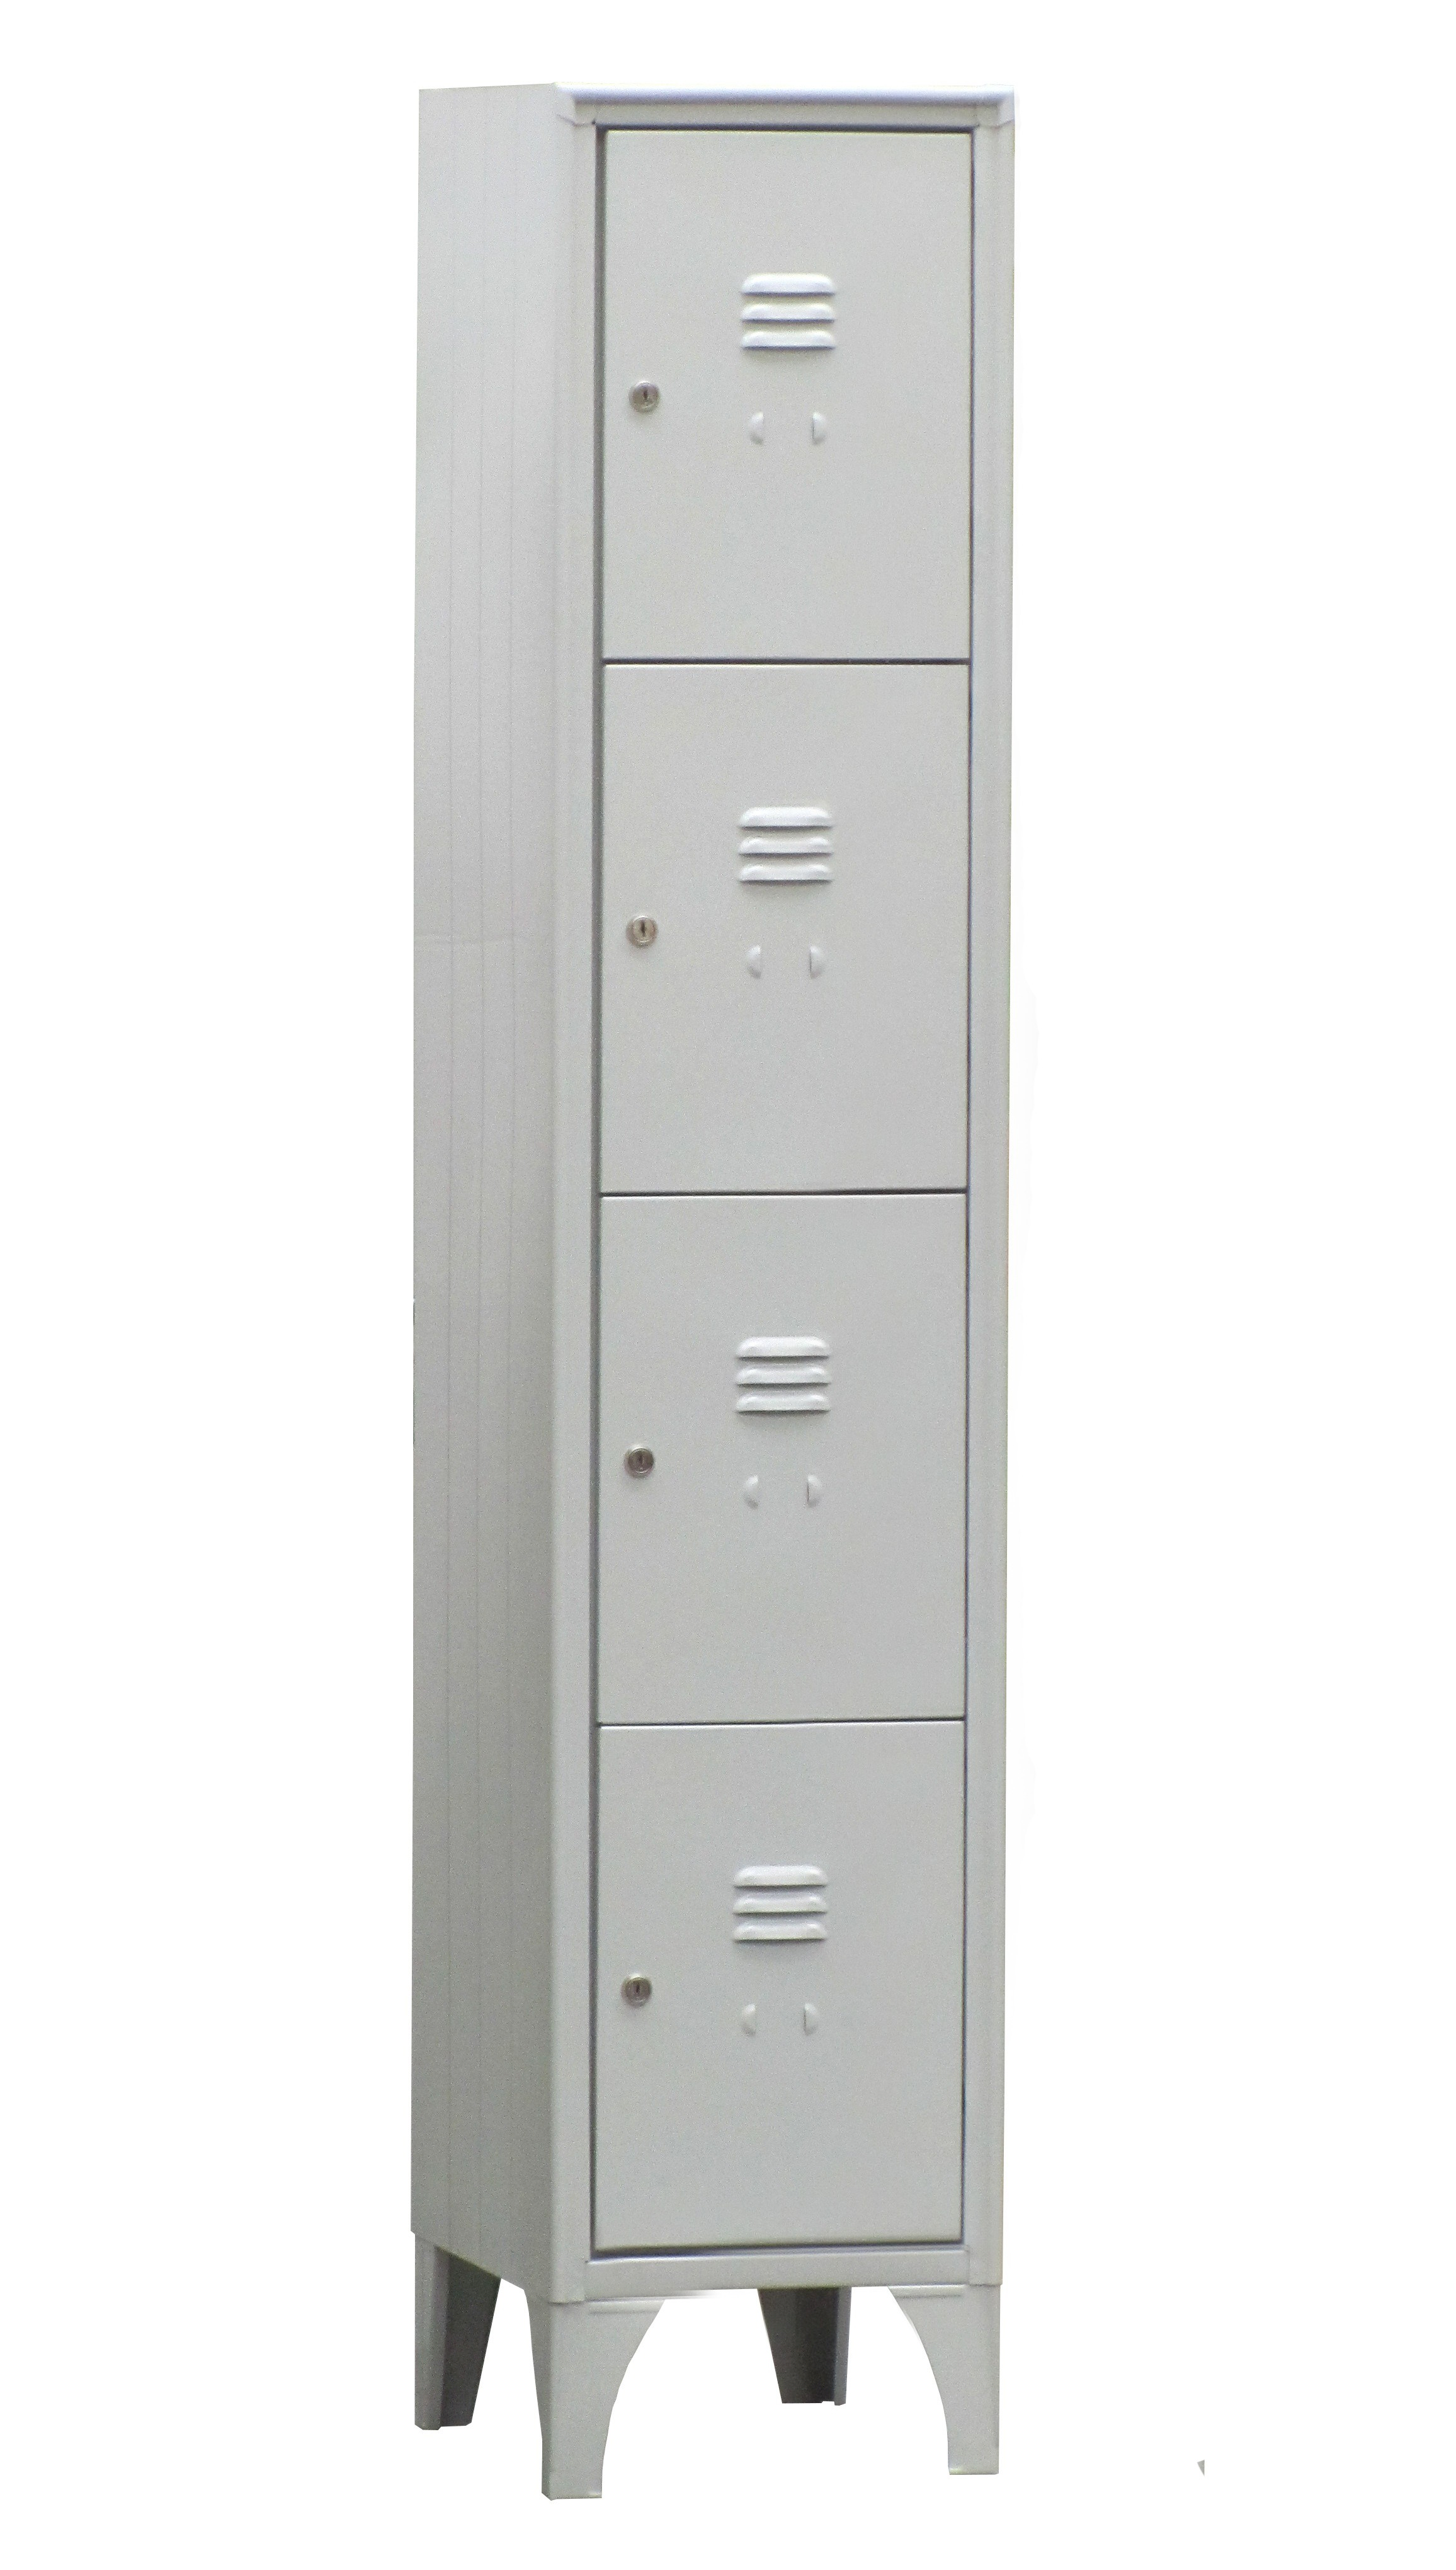 armoire vestiaire multicase profondeur 500 mm stl sarl. Black Bedroom Furniture Sets. Home Design Ideas